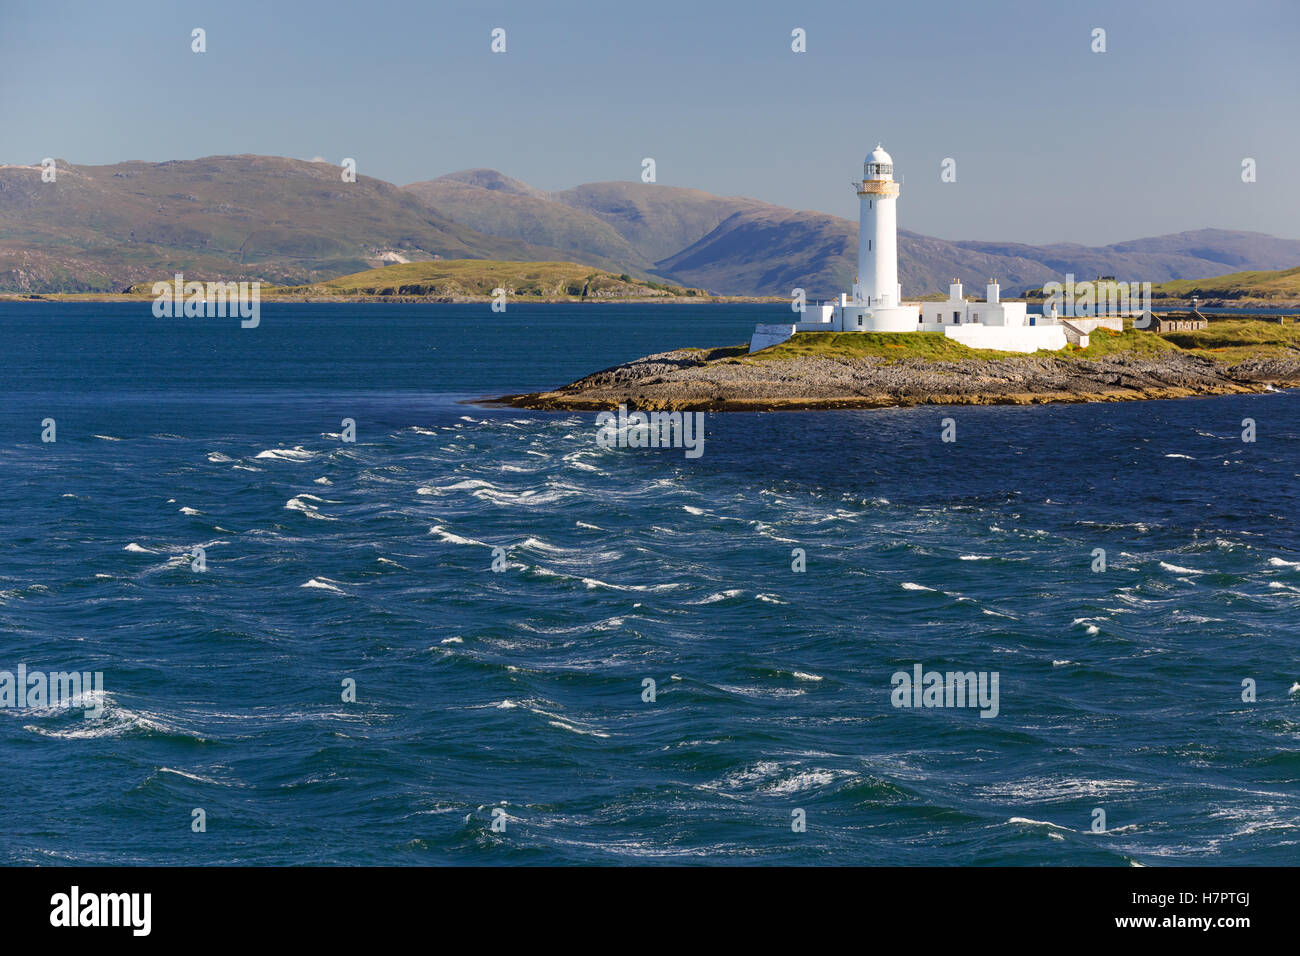 Eilean Musdile lighthouse, southern tip of island of Lismore, Firth of Lorn. Shot from ferry Oban - Isle of Mull. - Stock Image